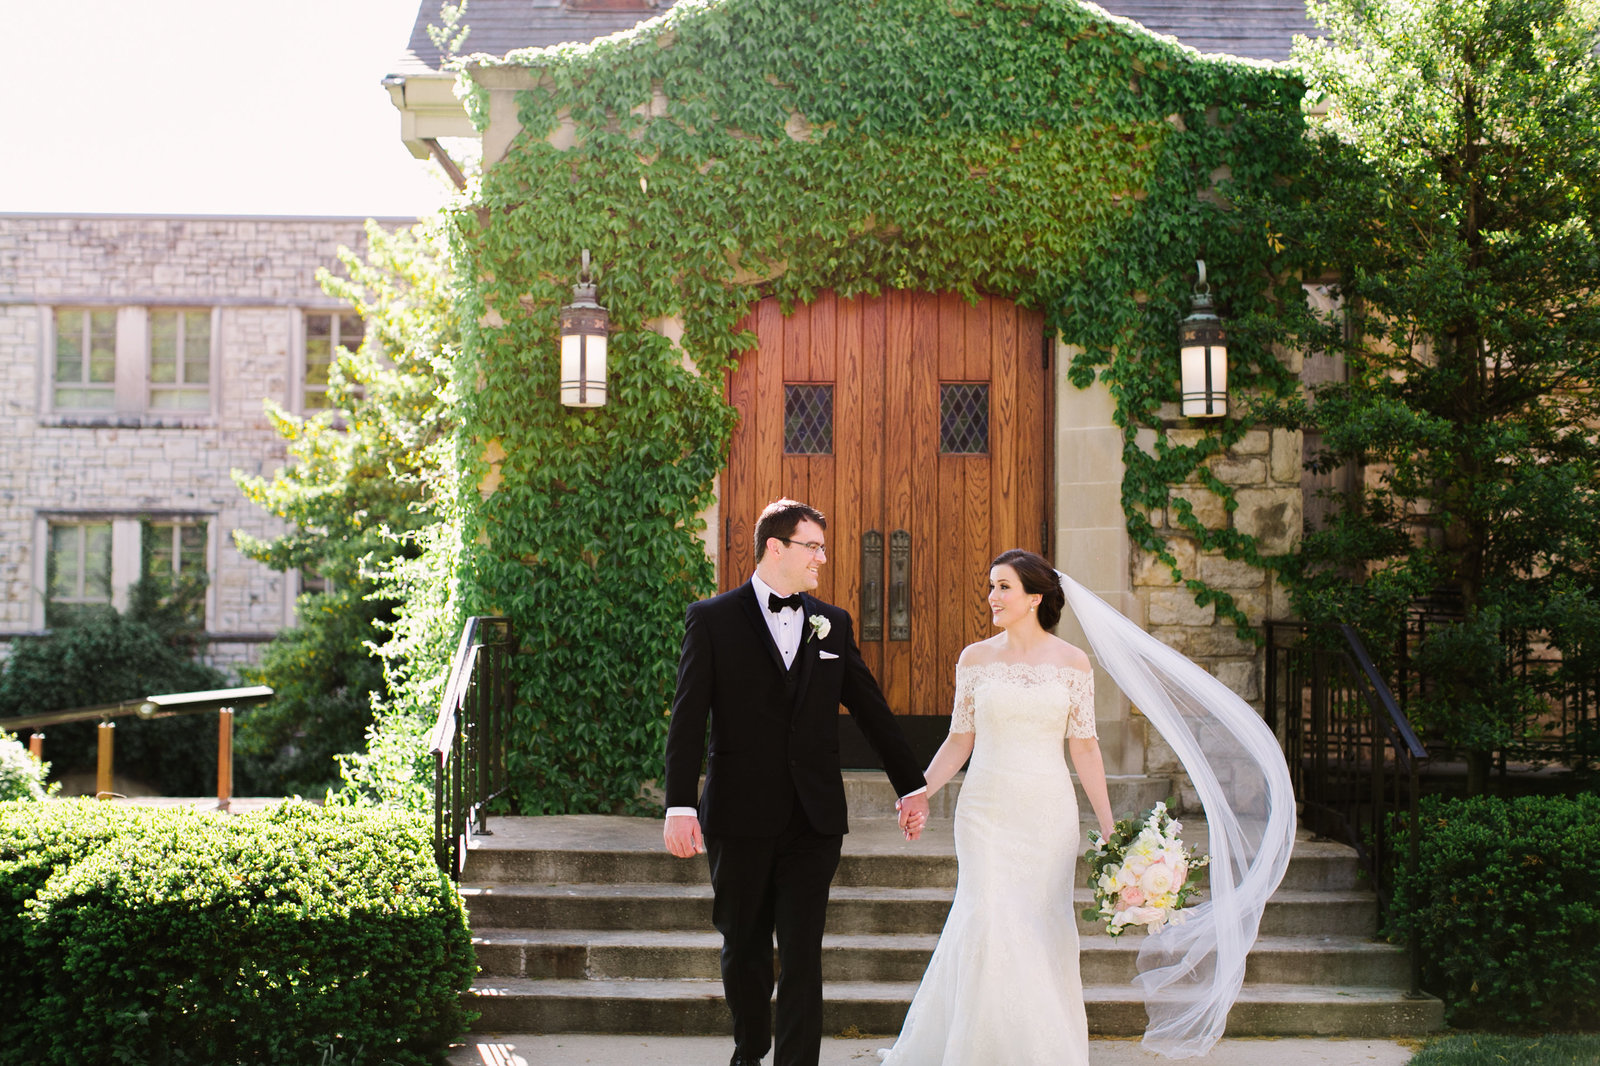 Nelson-Atkins-Kansas-City-Luxury-Garden-Wedding-Planning-Madison-Sanders-Second-Presbyterian-Church-Brookside-304